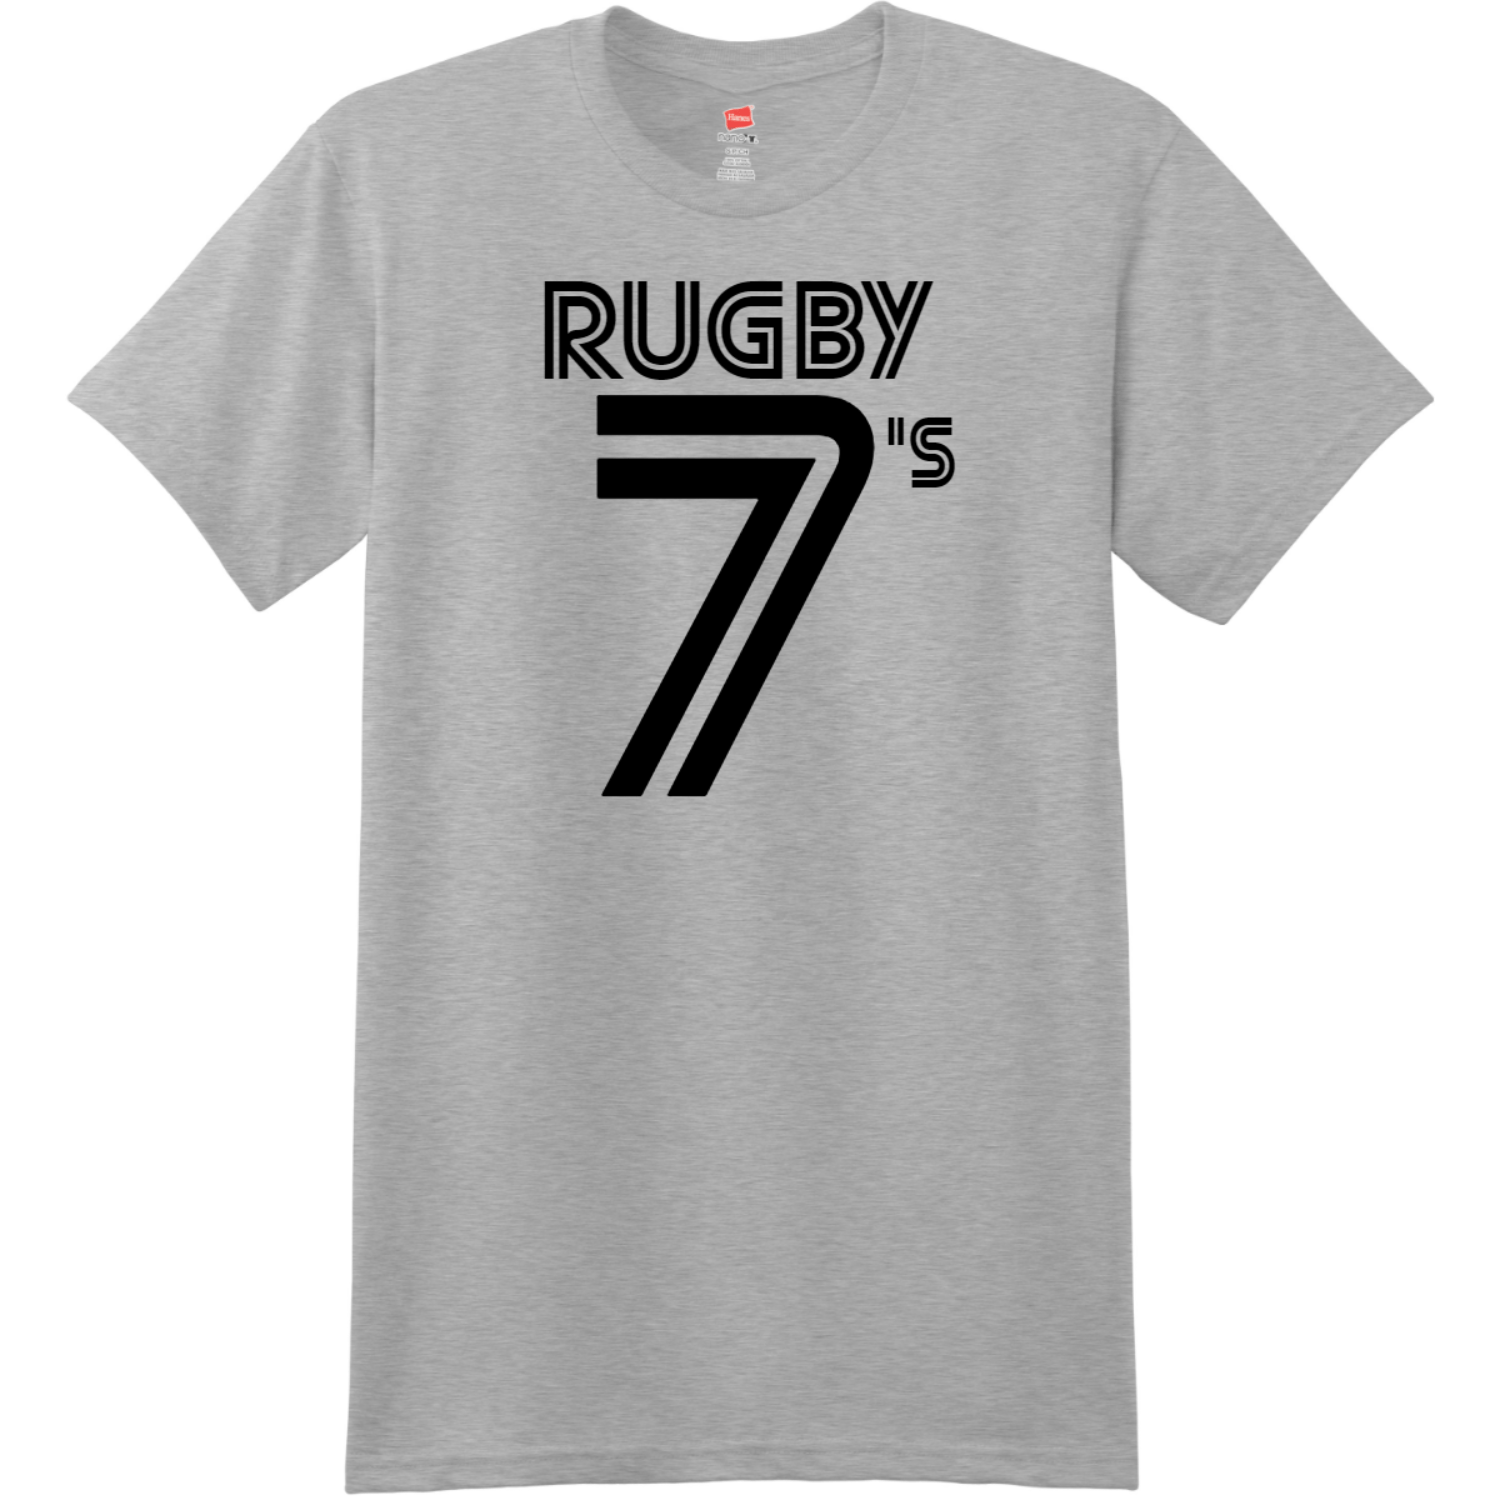 Rugby Sevens Retro T Shirt Light Steel Hanes Nano 4980 Ringspun Cotton T Shirt